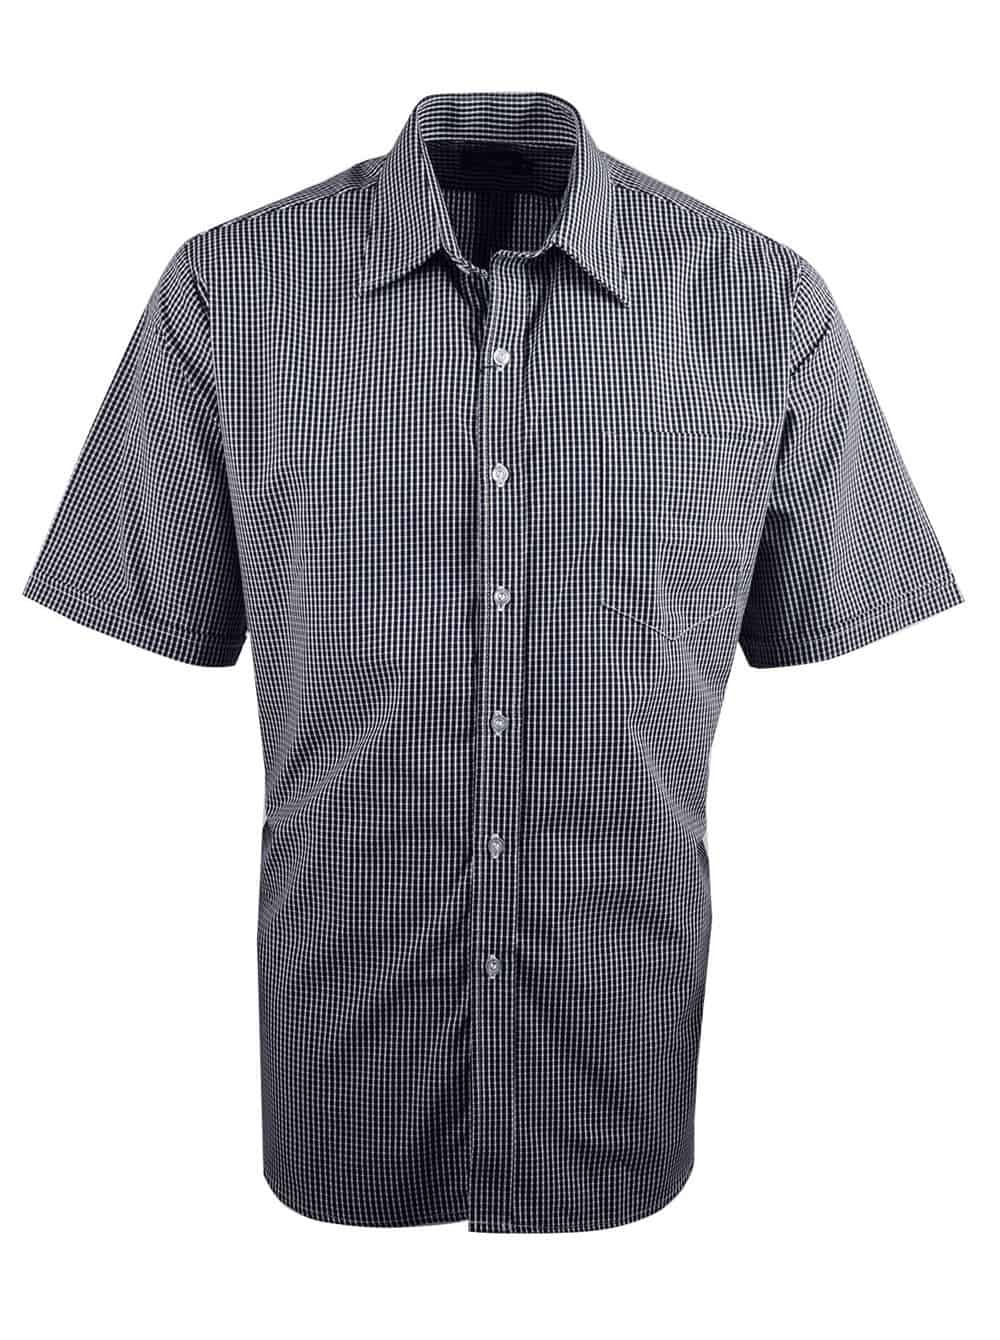 Classic S/S Lounge Shirts and Blouses